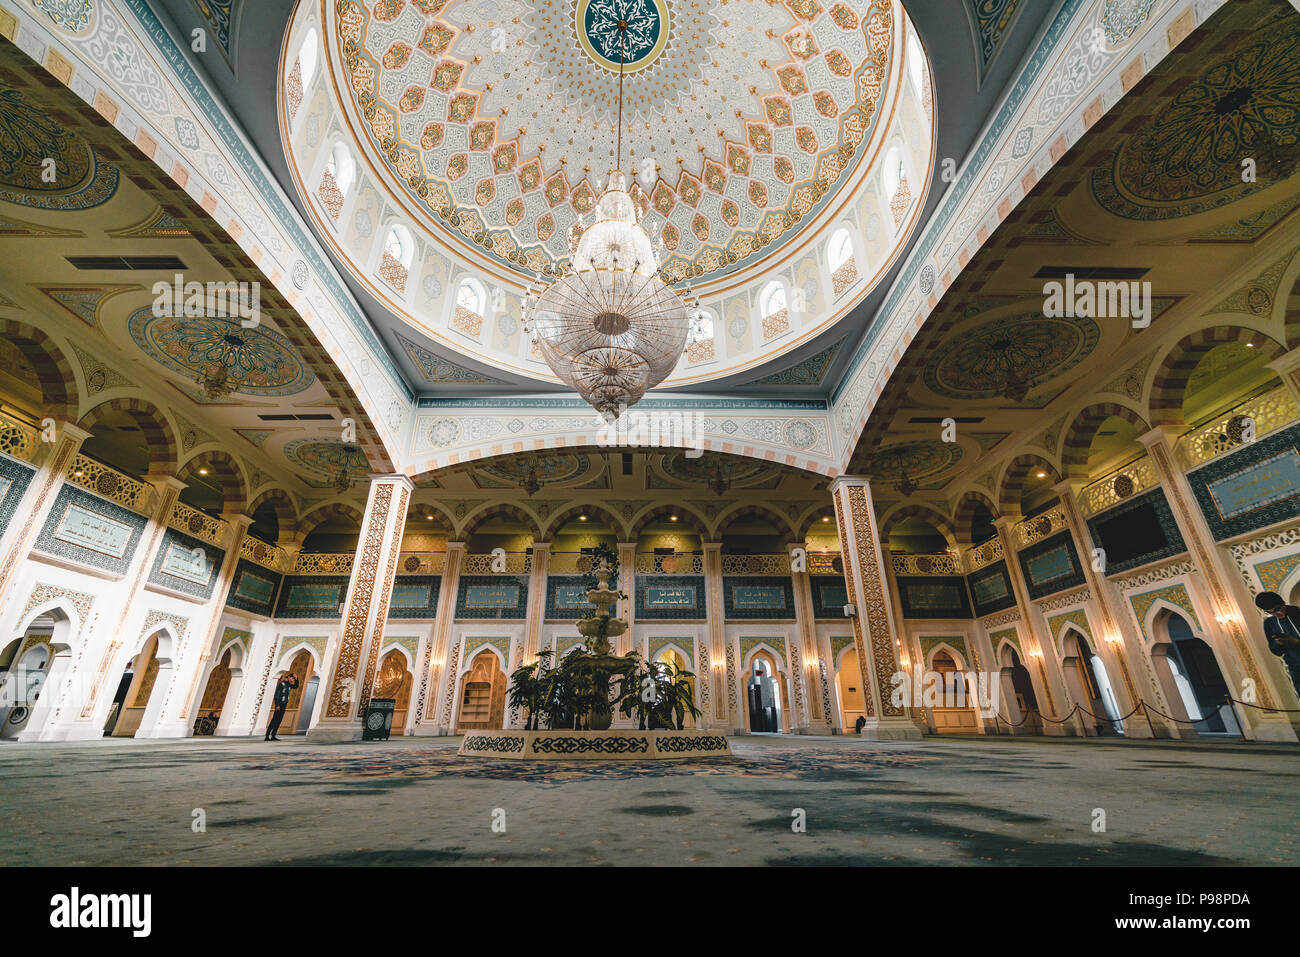 Hazrat Sultan Mosque inside prayer room Astana Kazakhstan Stock Photo